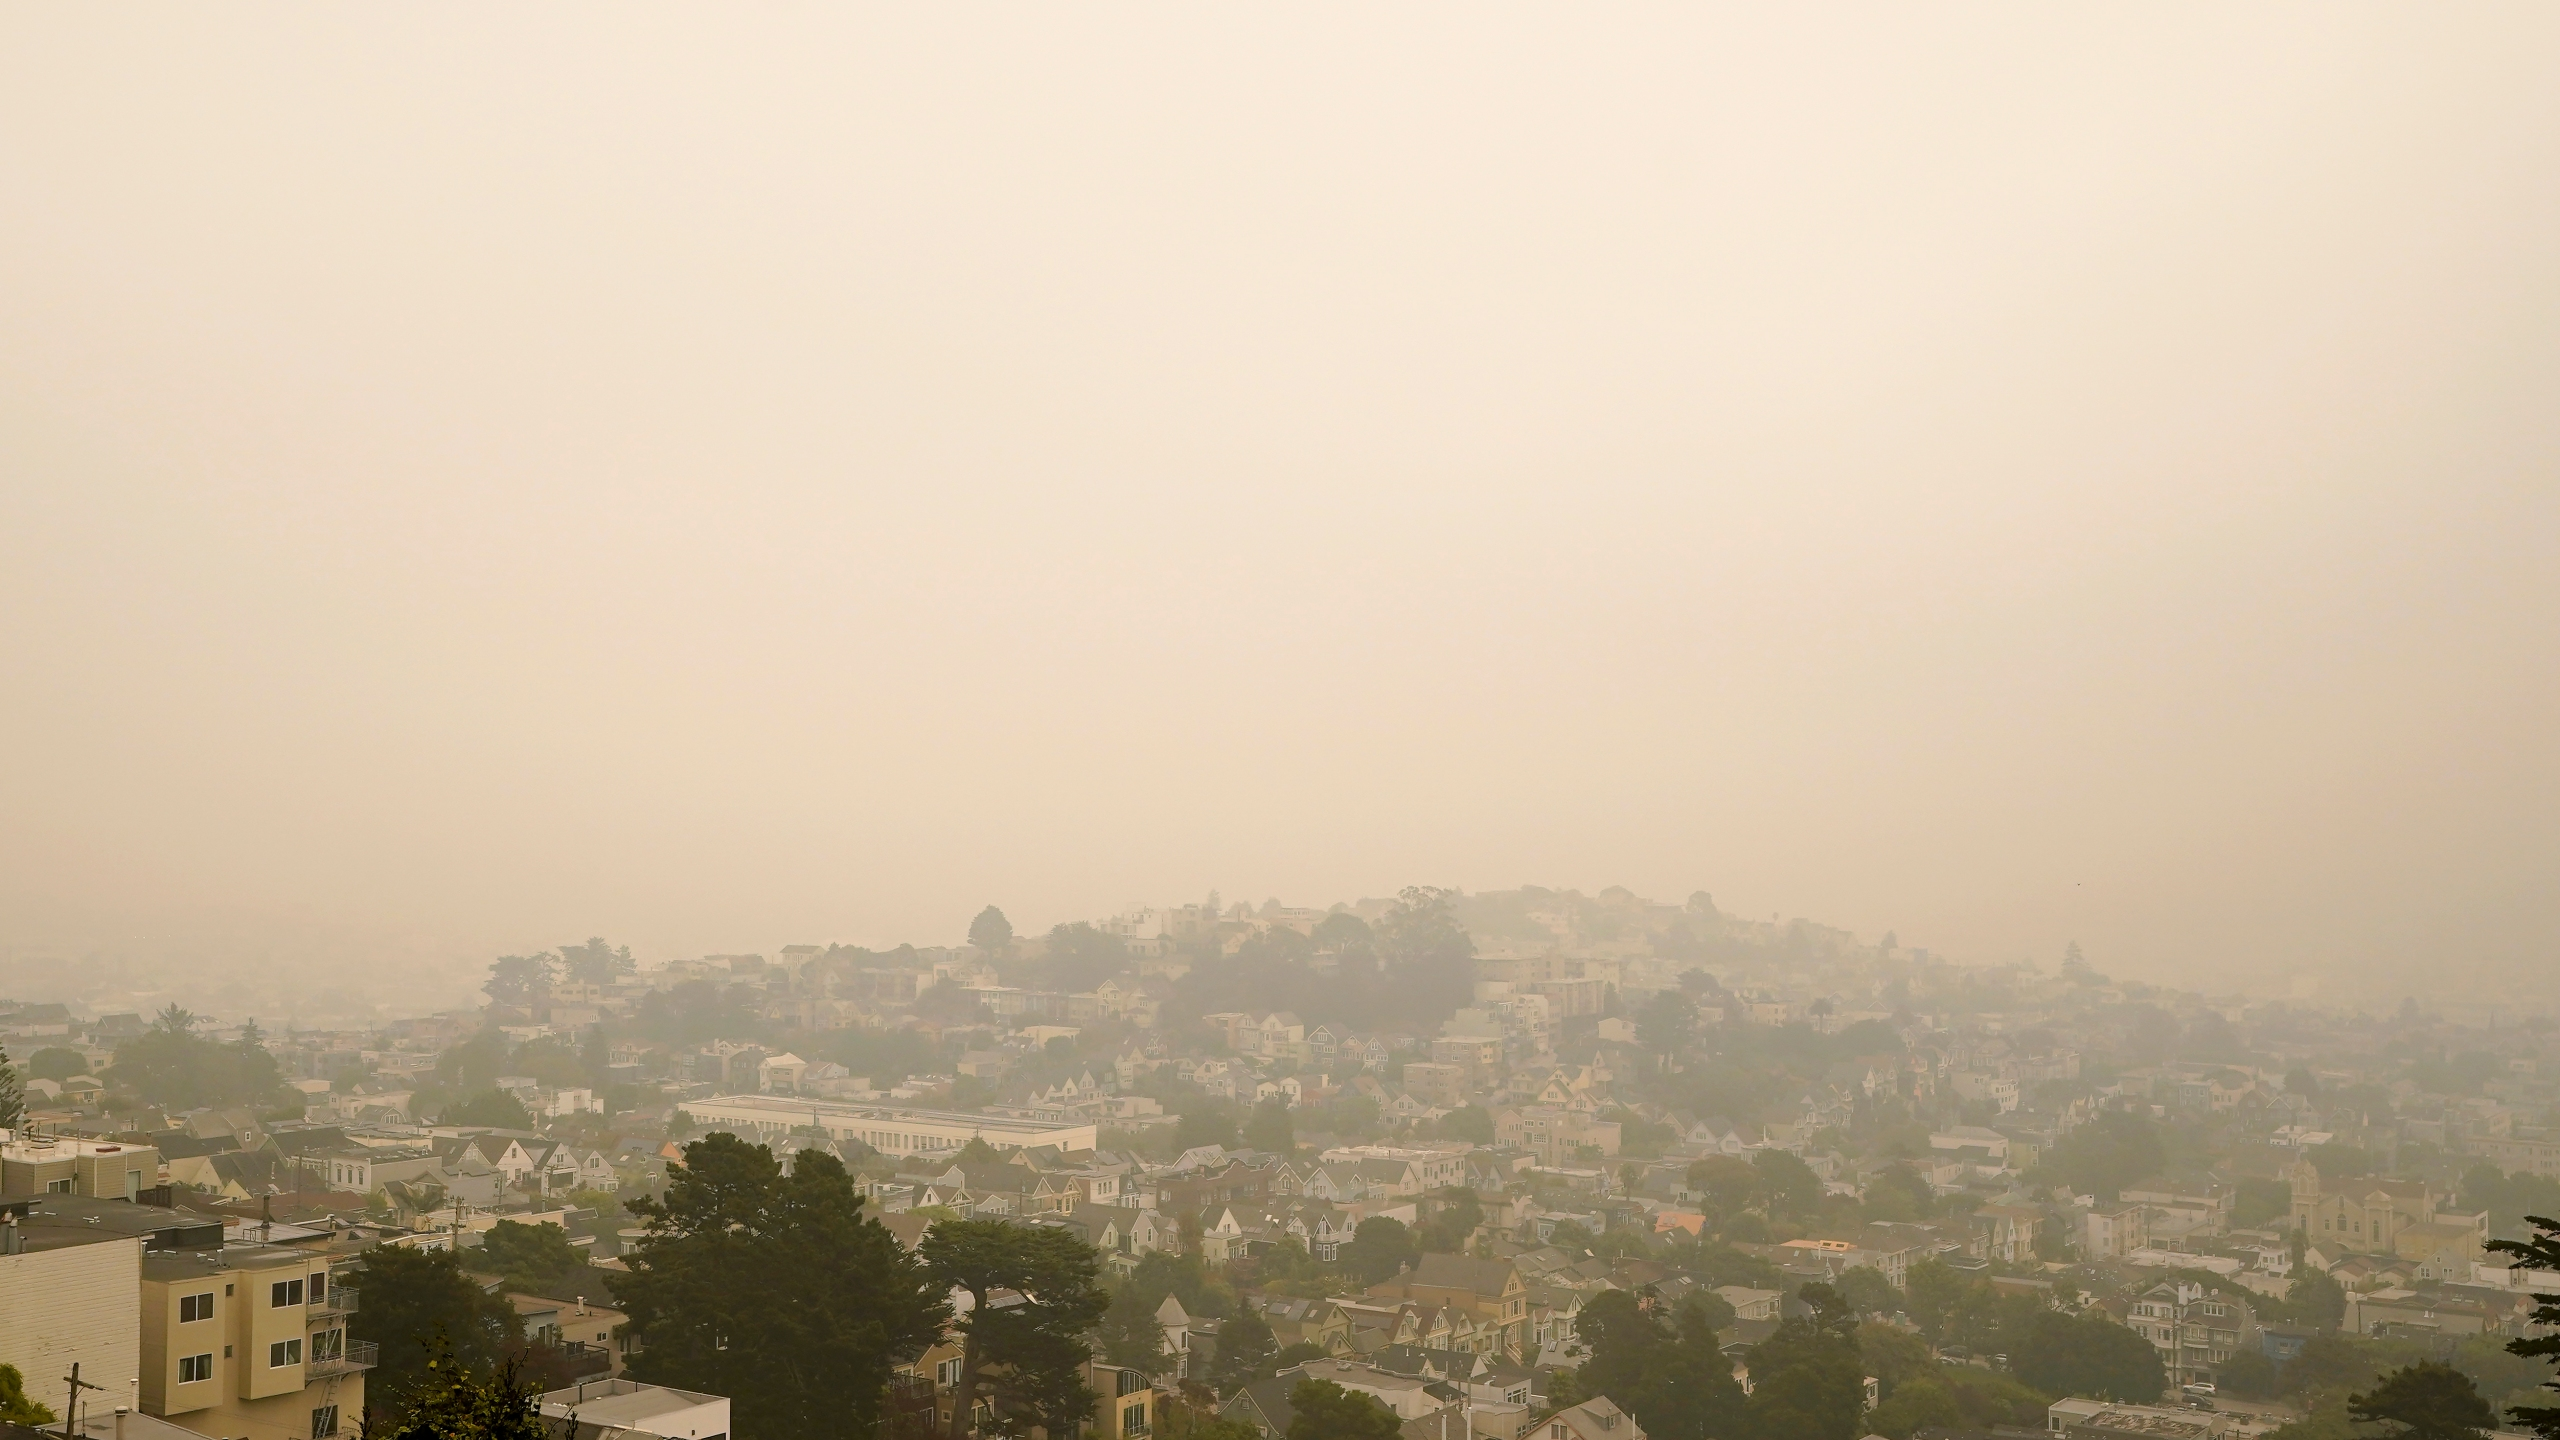 Smoke and haze from wildfires hovers over San Francisco, Thursday morning, Sept. 10, 2020. (AP Photo/Jeff Chiu)